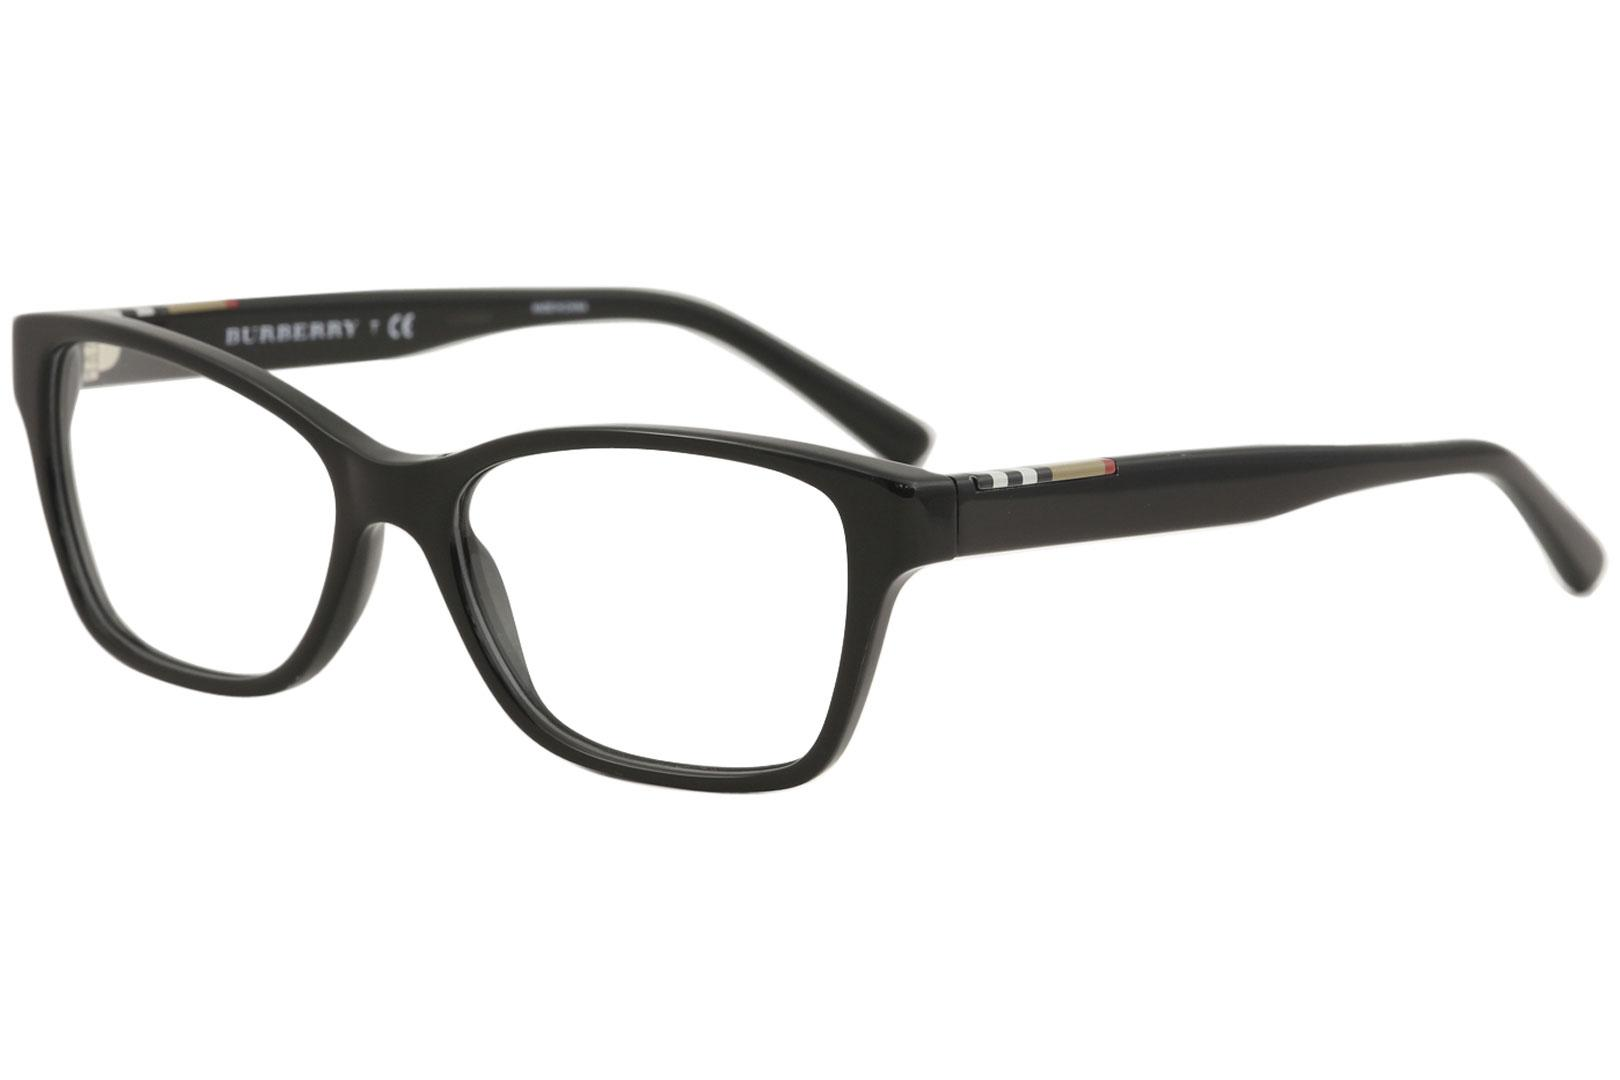 277703525a7c Burberry Women's Eyeglasses BE2144 BE/2144 Full Rim Optical Frame by  Burberry